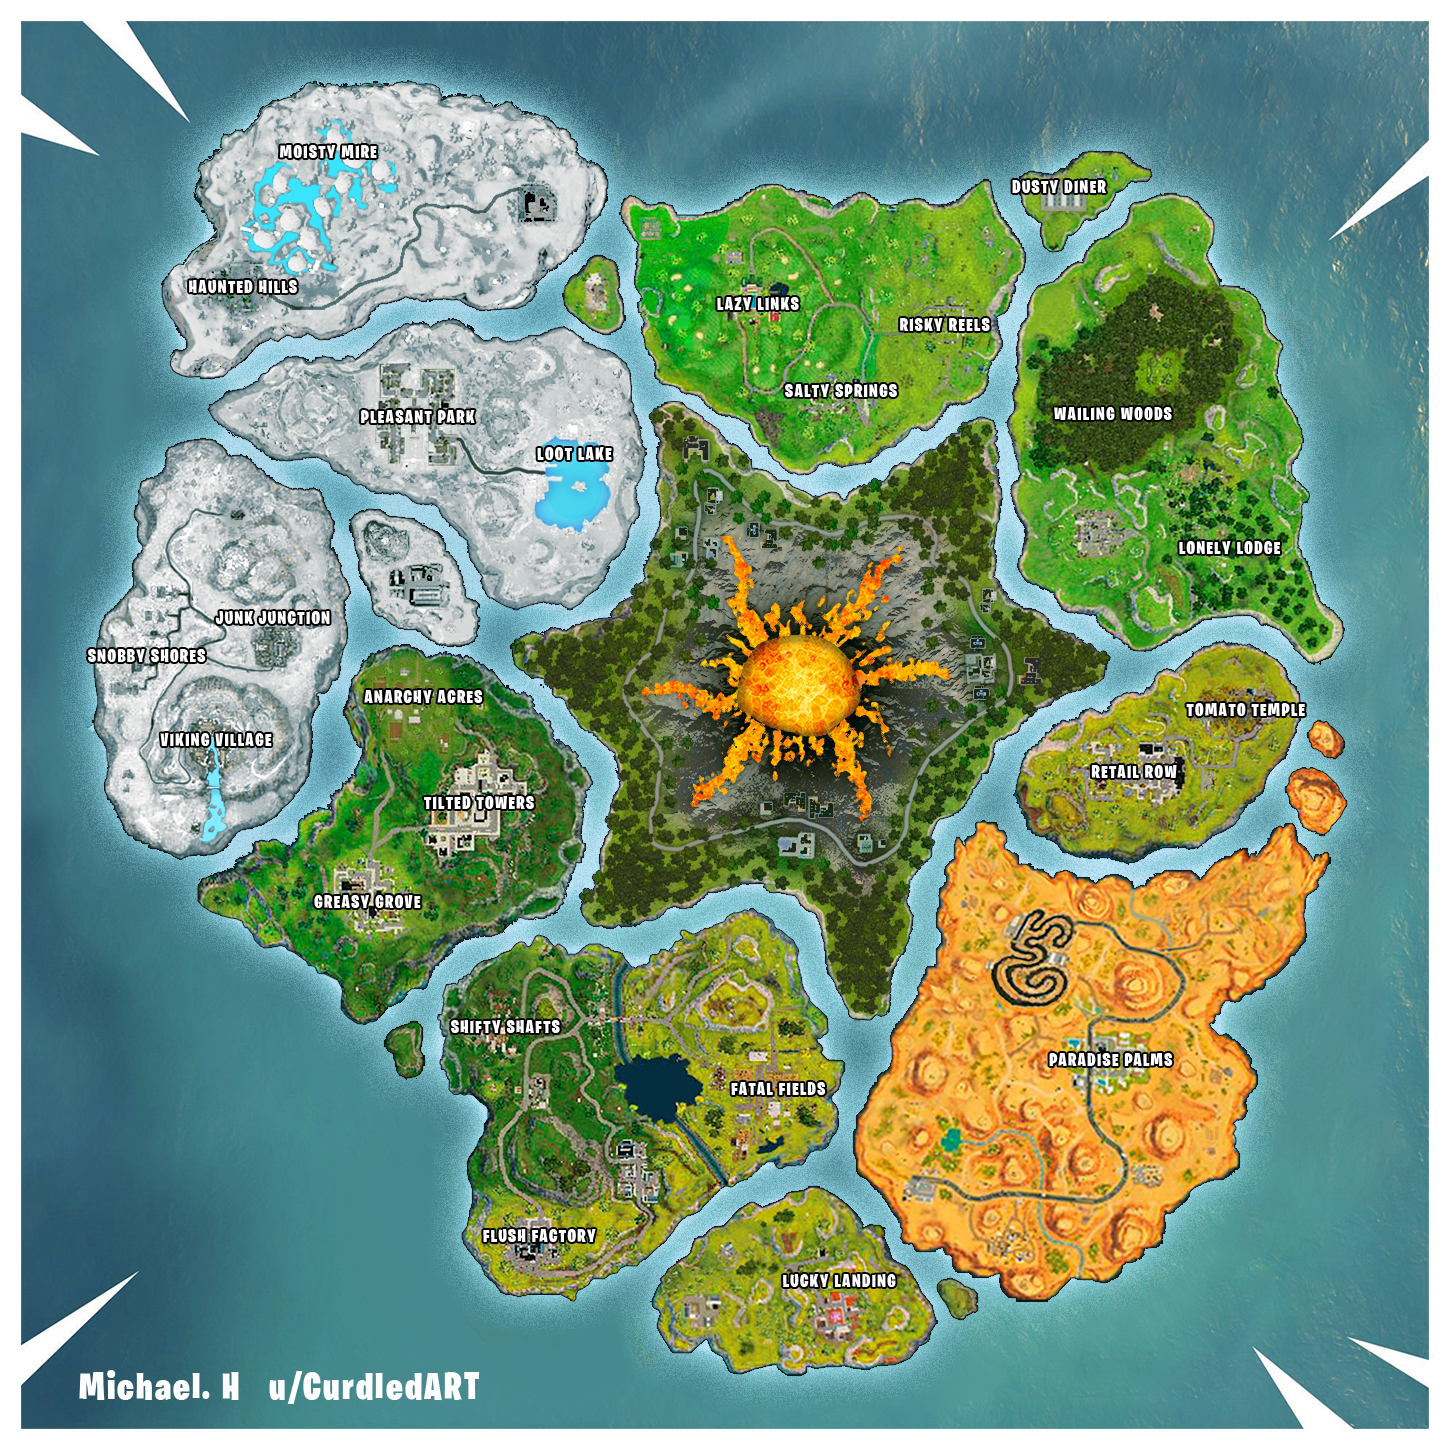 Fortnite Temporada 8 Mapa.Esto Sea El Posible Mapa De La Temporada 8 In 2019 Video